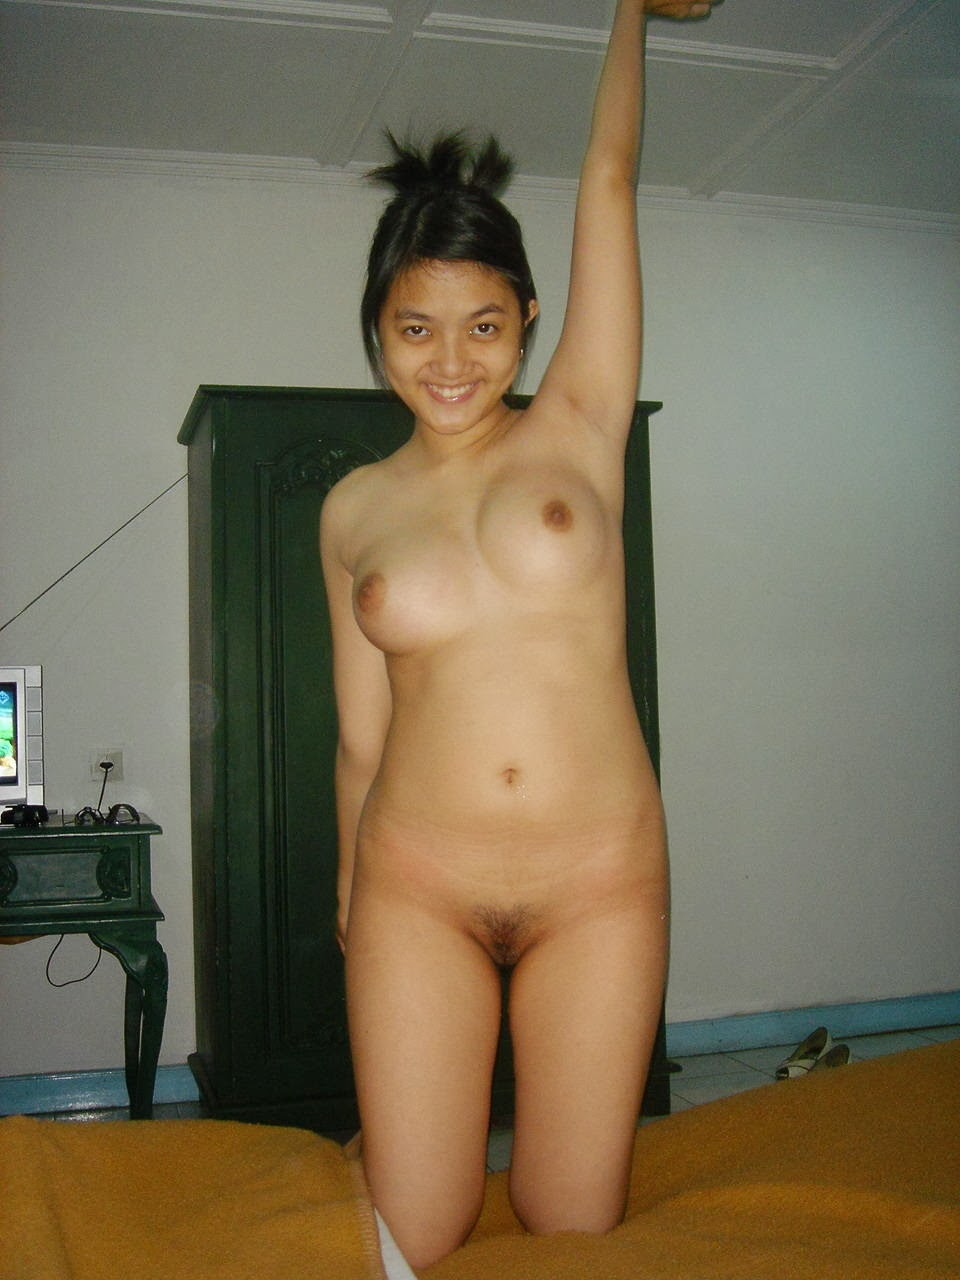 indonesian girls nude girl hardcore